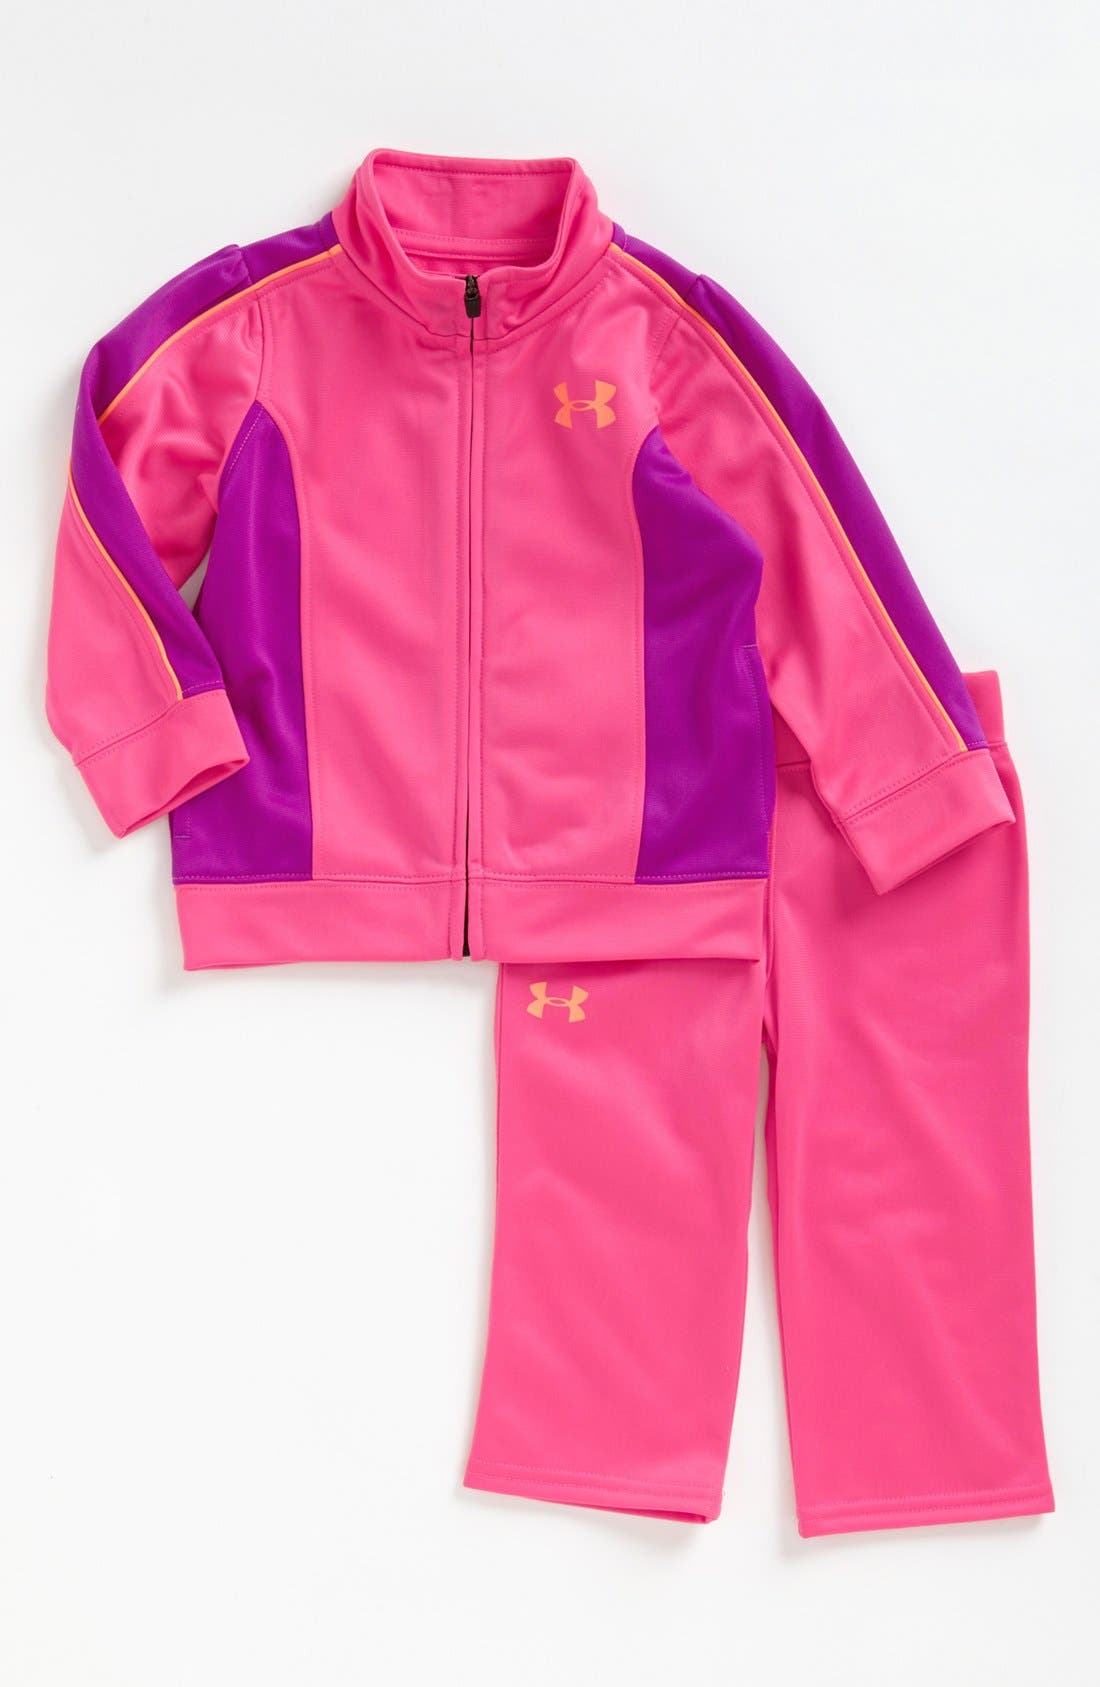 Main Image - Under Armour Jacket & Pants (Baby Girls) (Online Only)